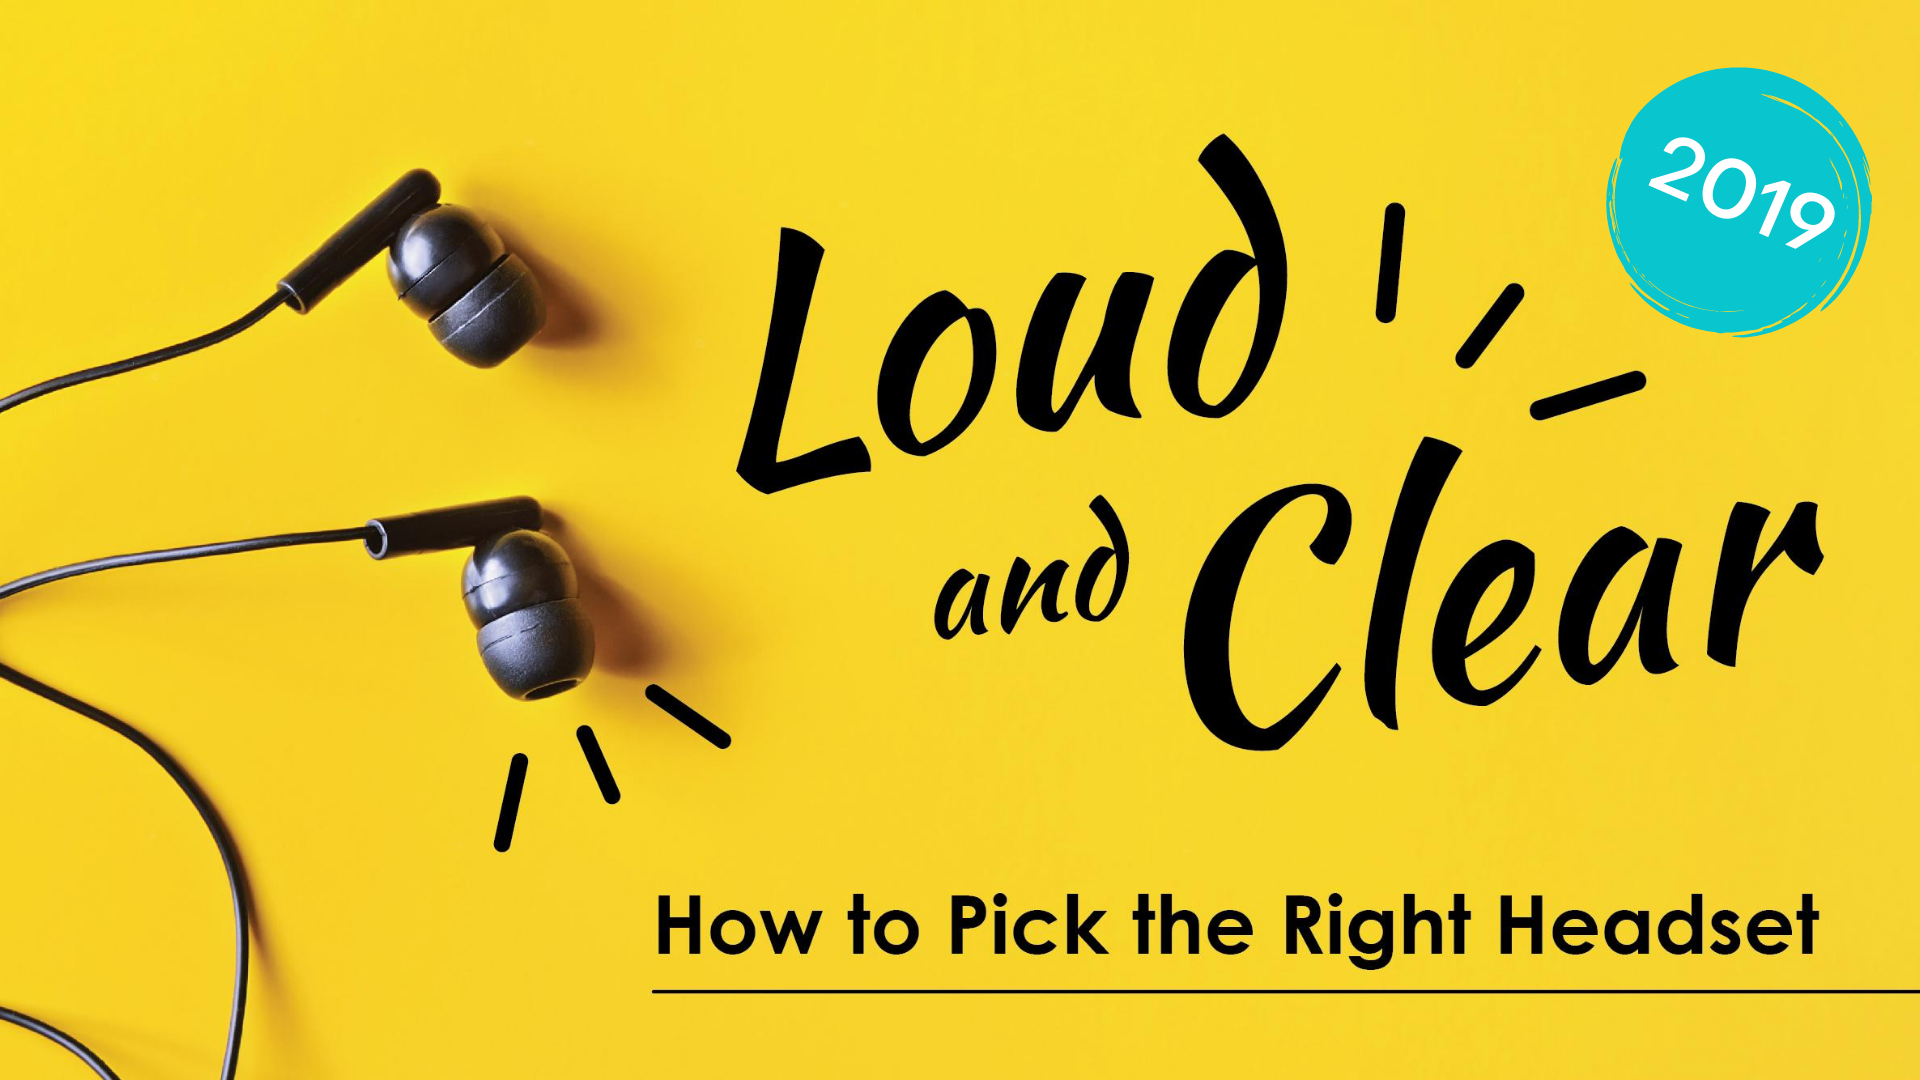 Loud and Clear 2019: How to Pick the Right Headset